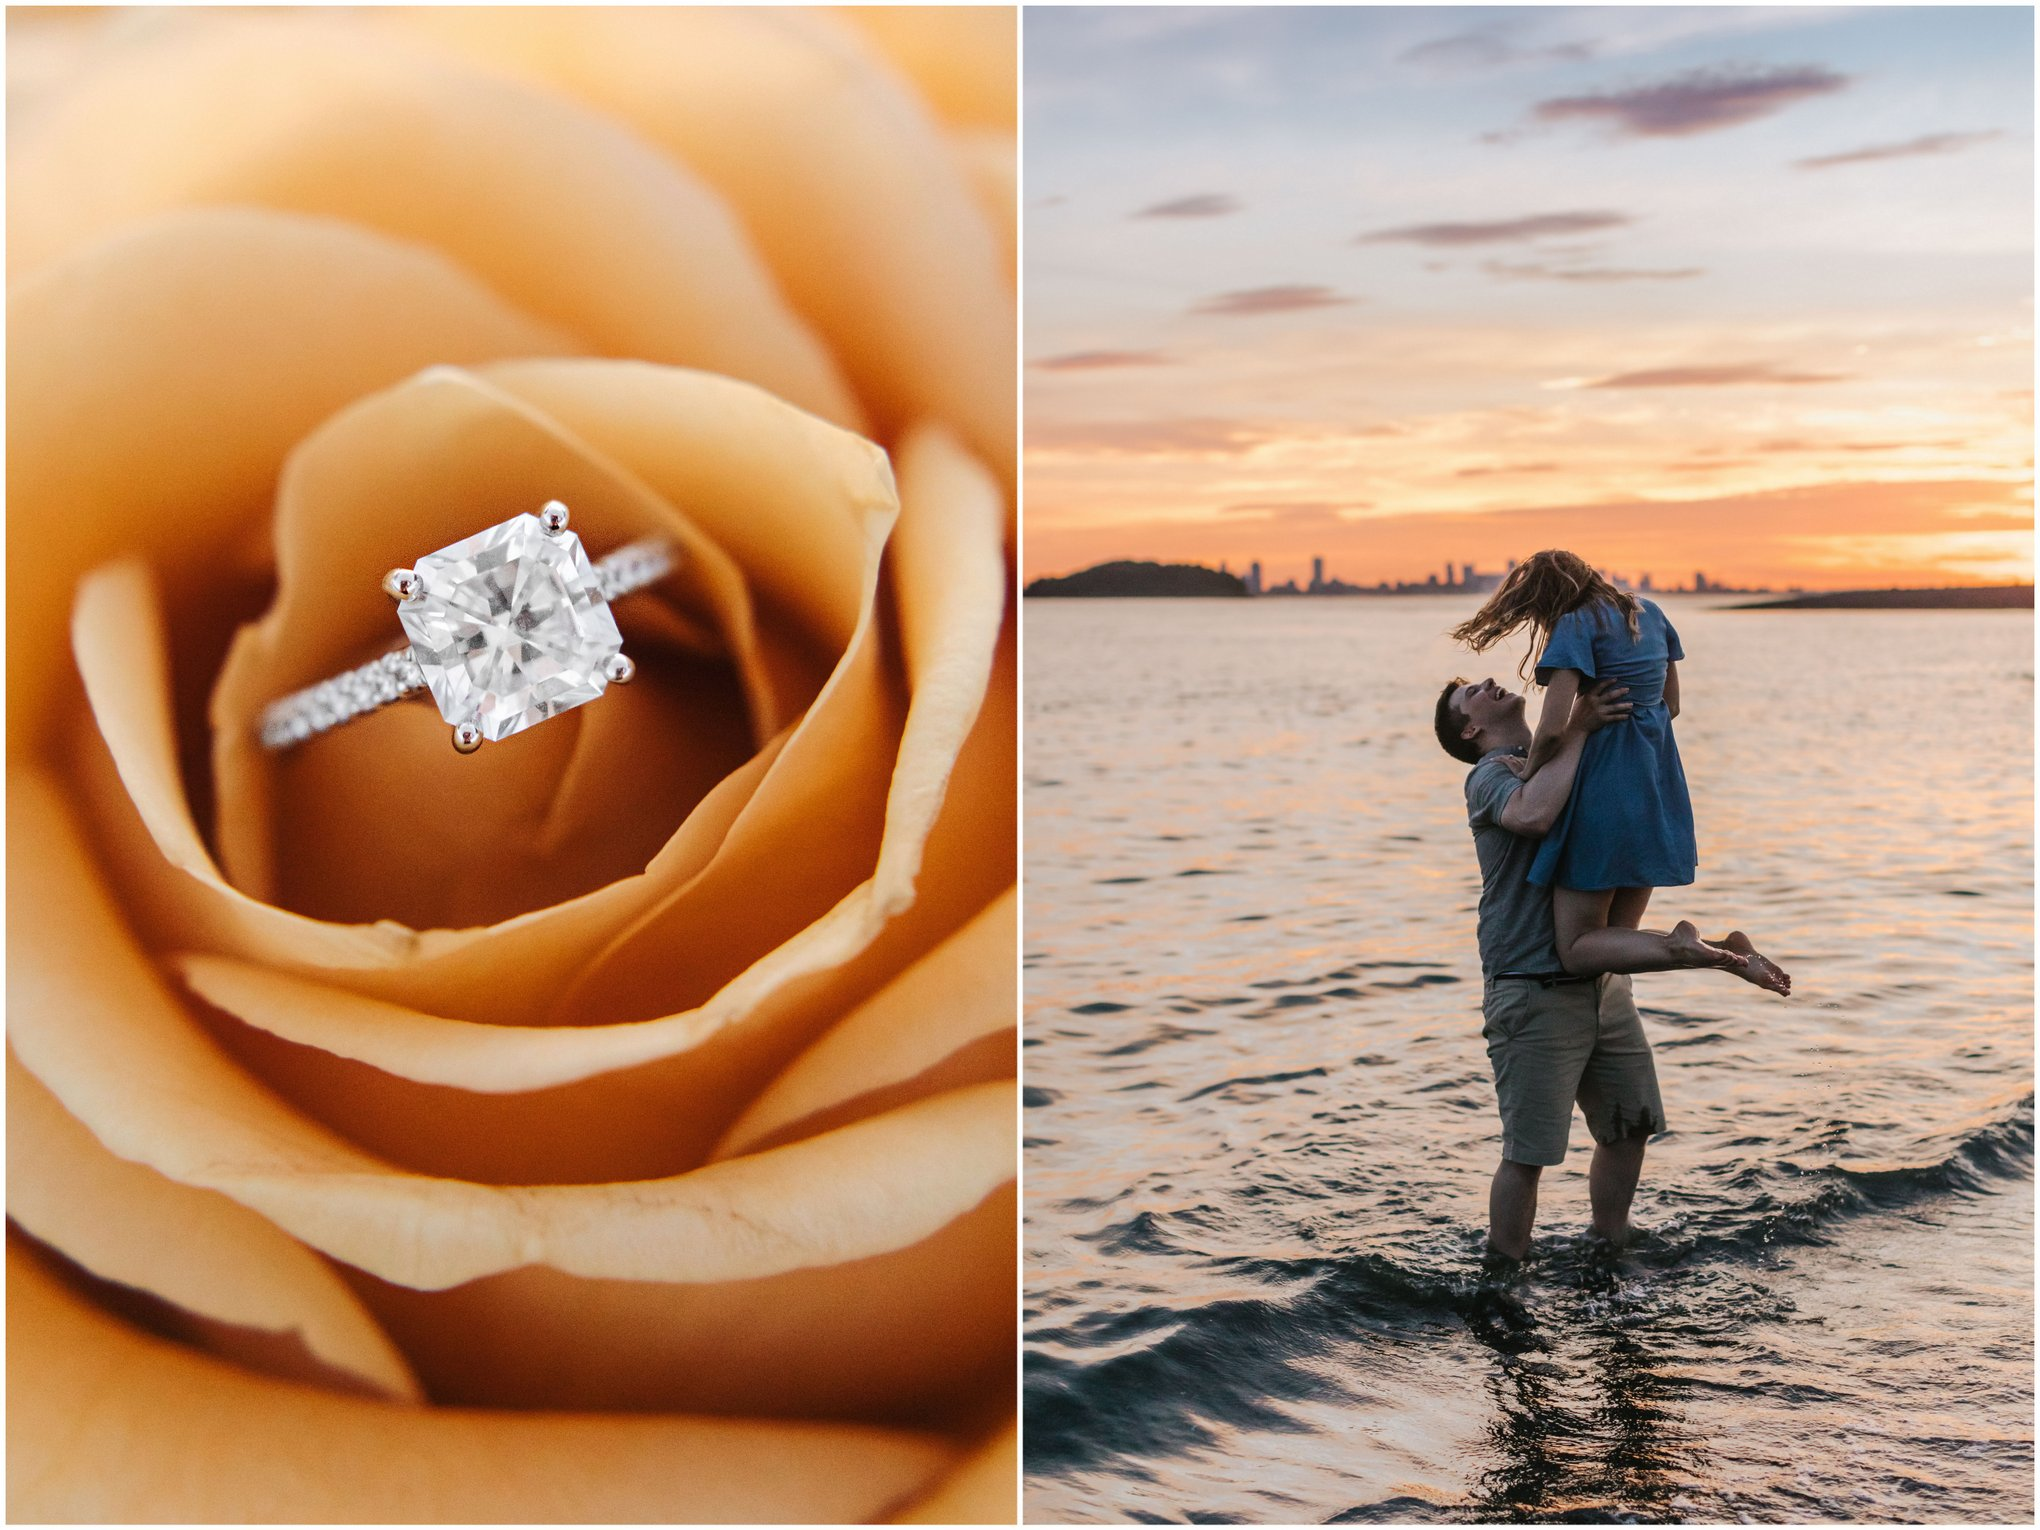 Yacht-Proposal-Boat-Boston-Harbor-Engagement-Beach-Lena-Mirisola-21.JPG